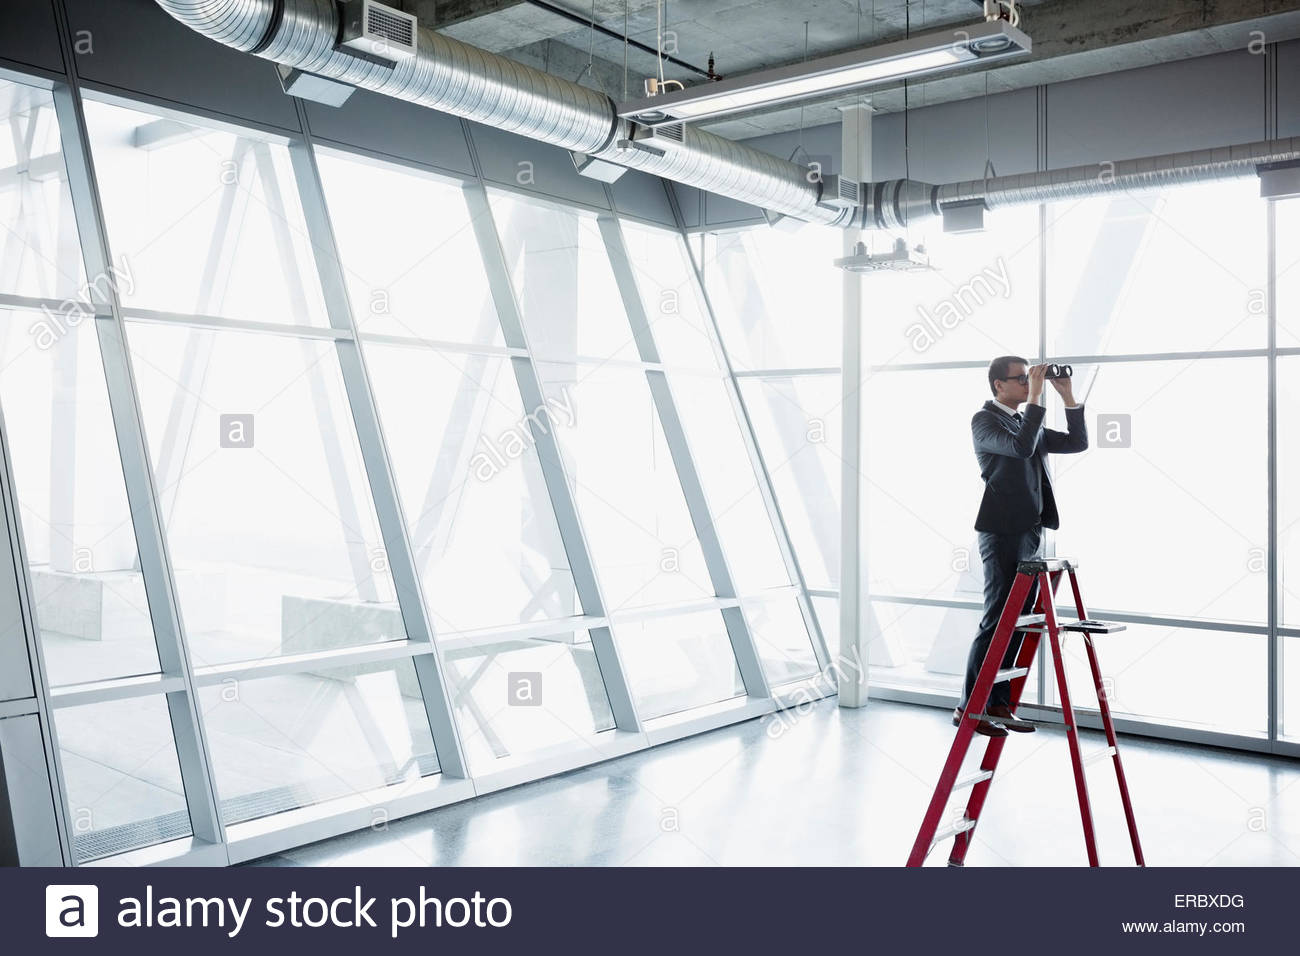 Businessman on ladder with binoculars in modern office - Stock Image